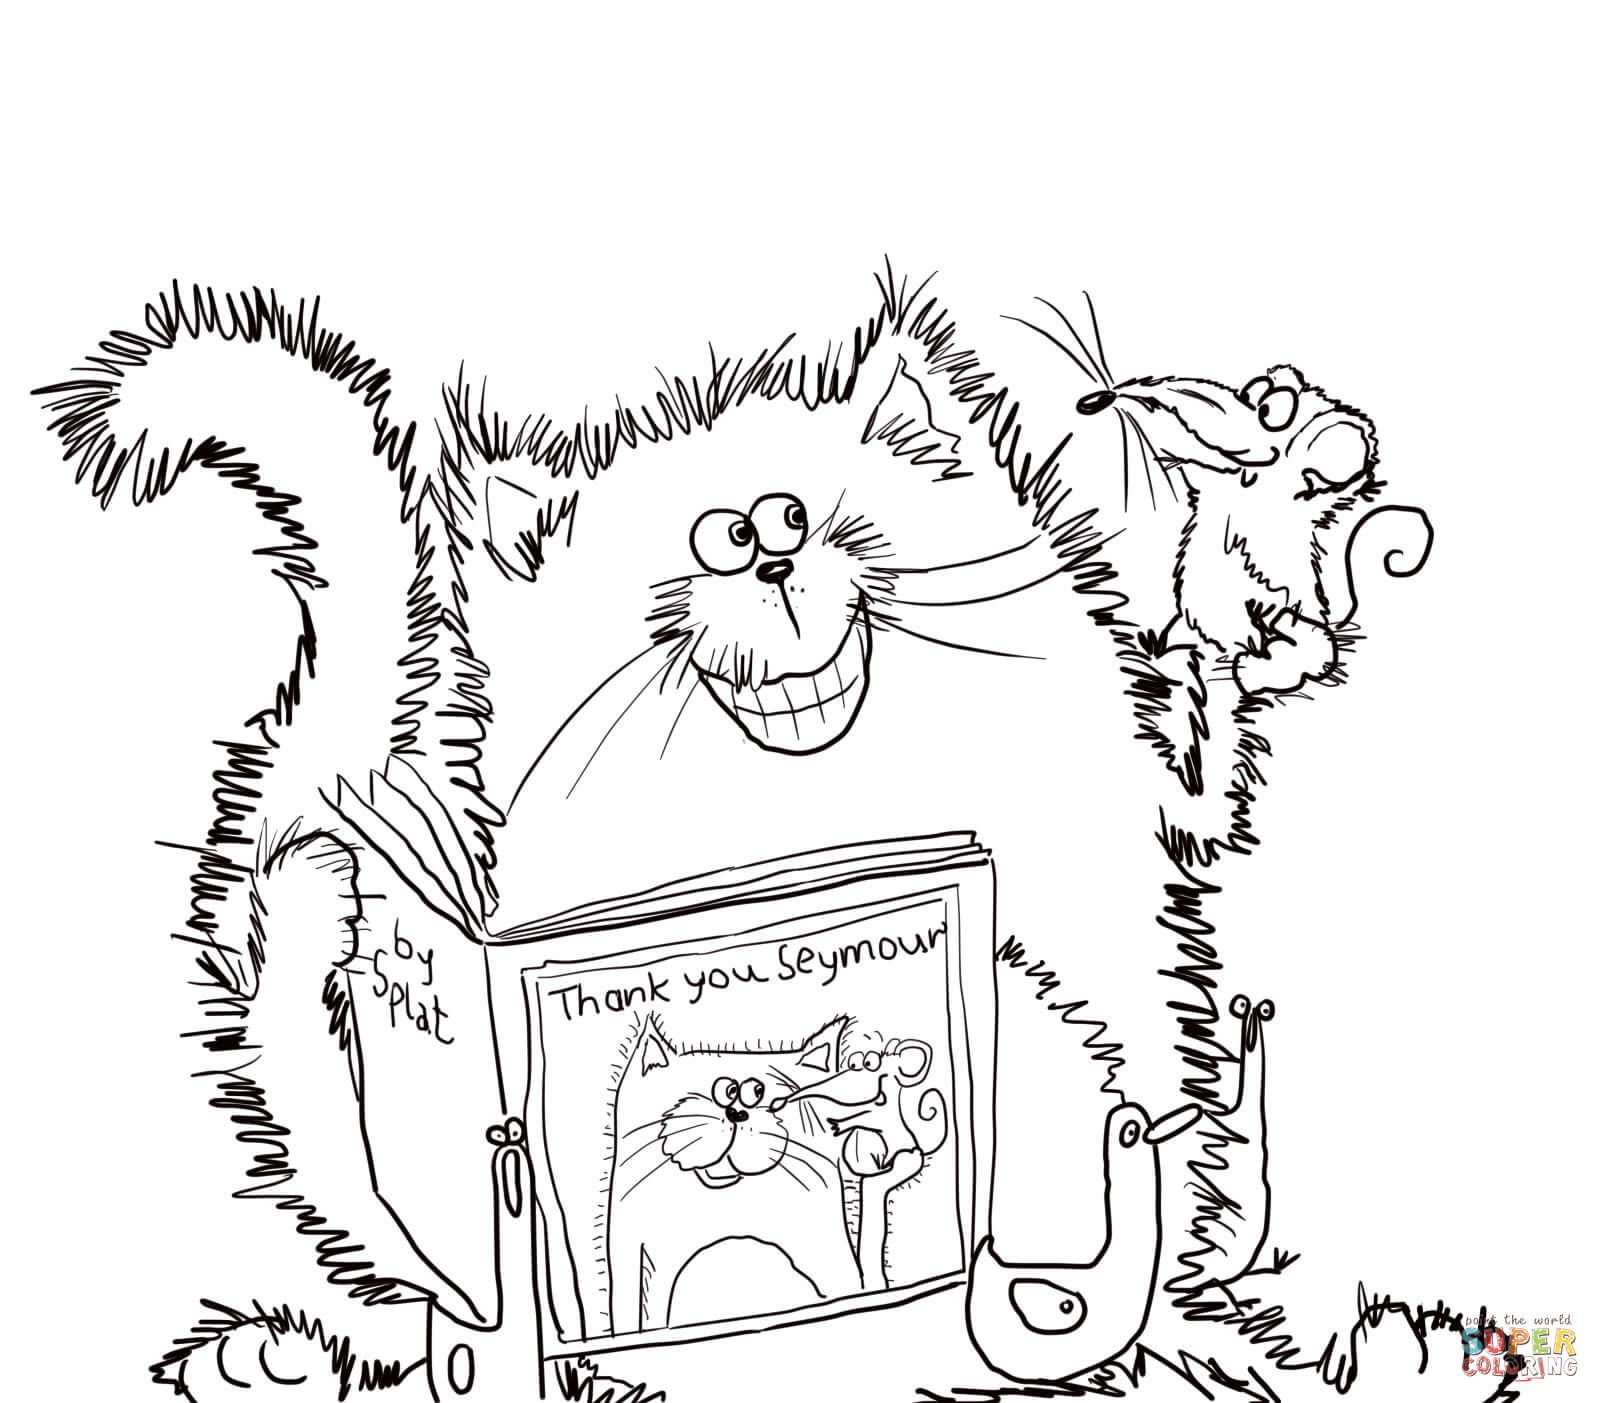 the cat says thank you coloring page free printable coloring pages